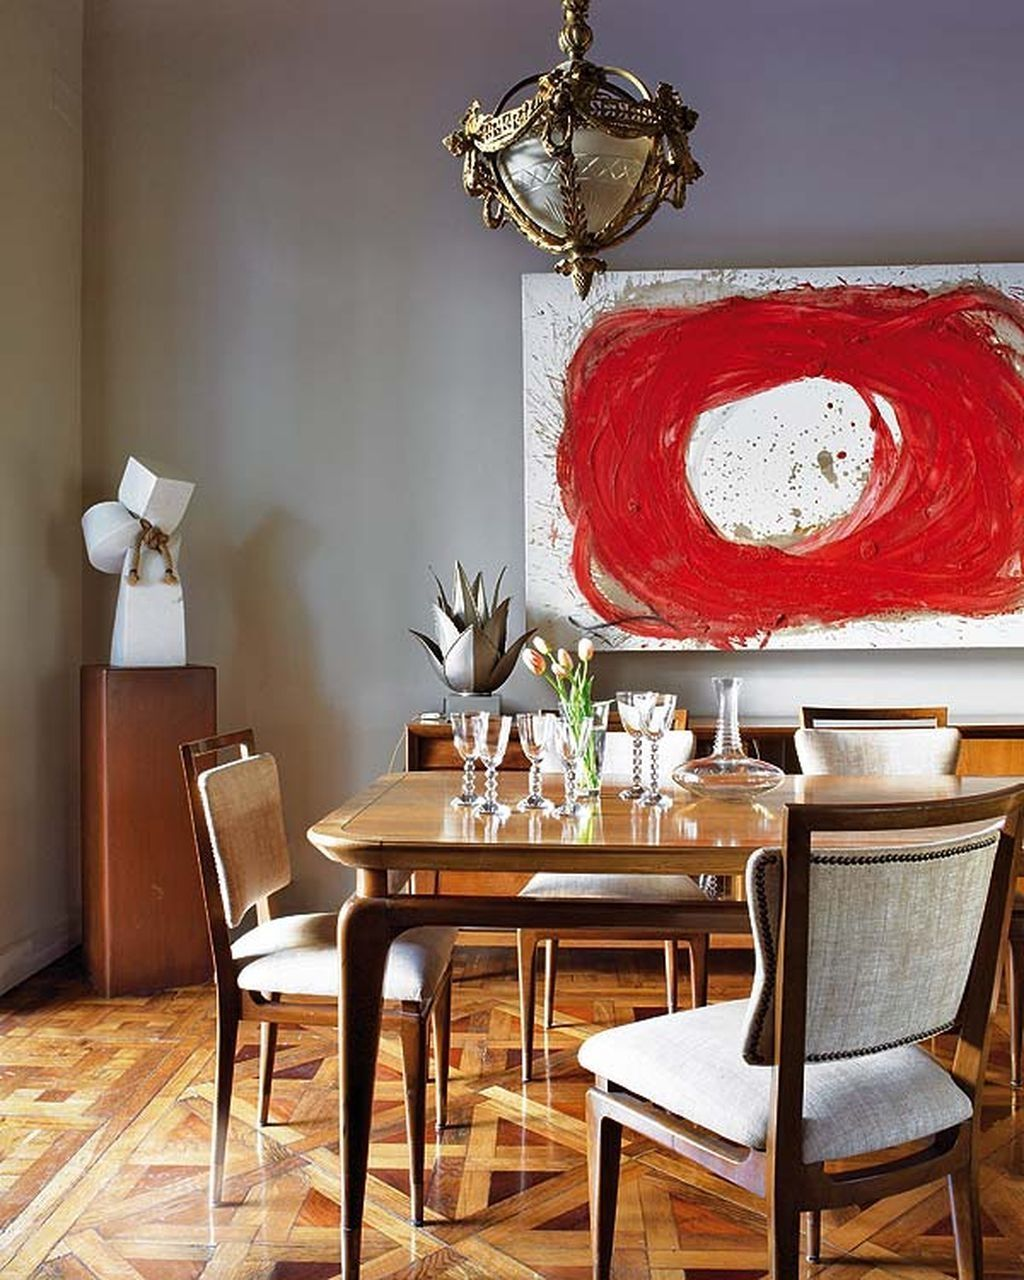 Stunning Romantic Dining Room Decor Ideas Best For Valentines Day 16